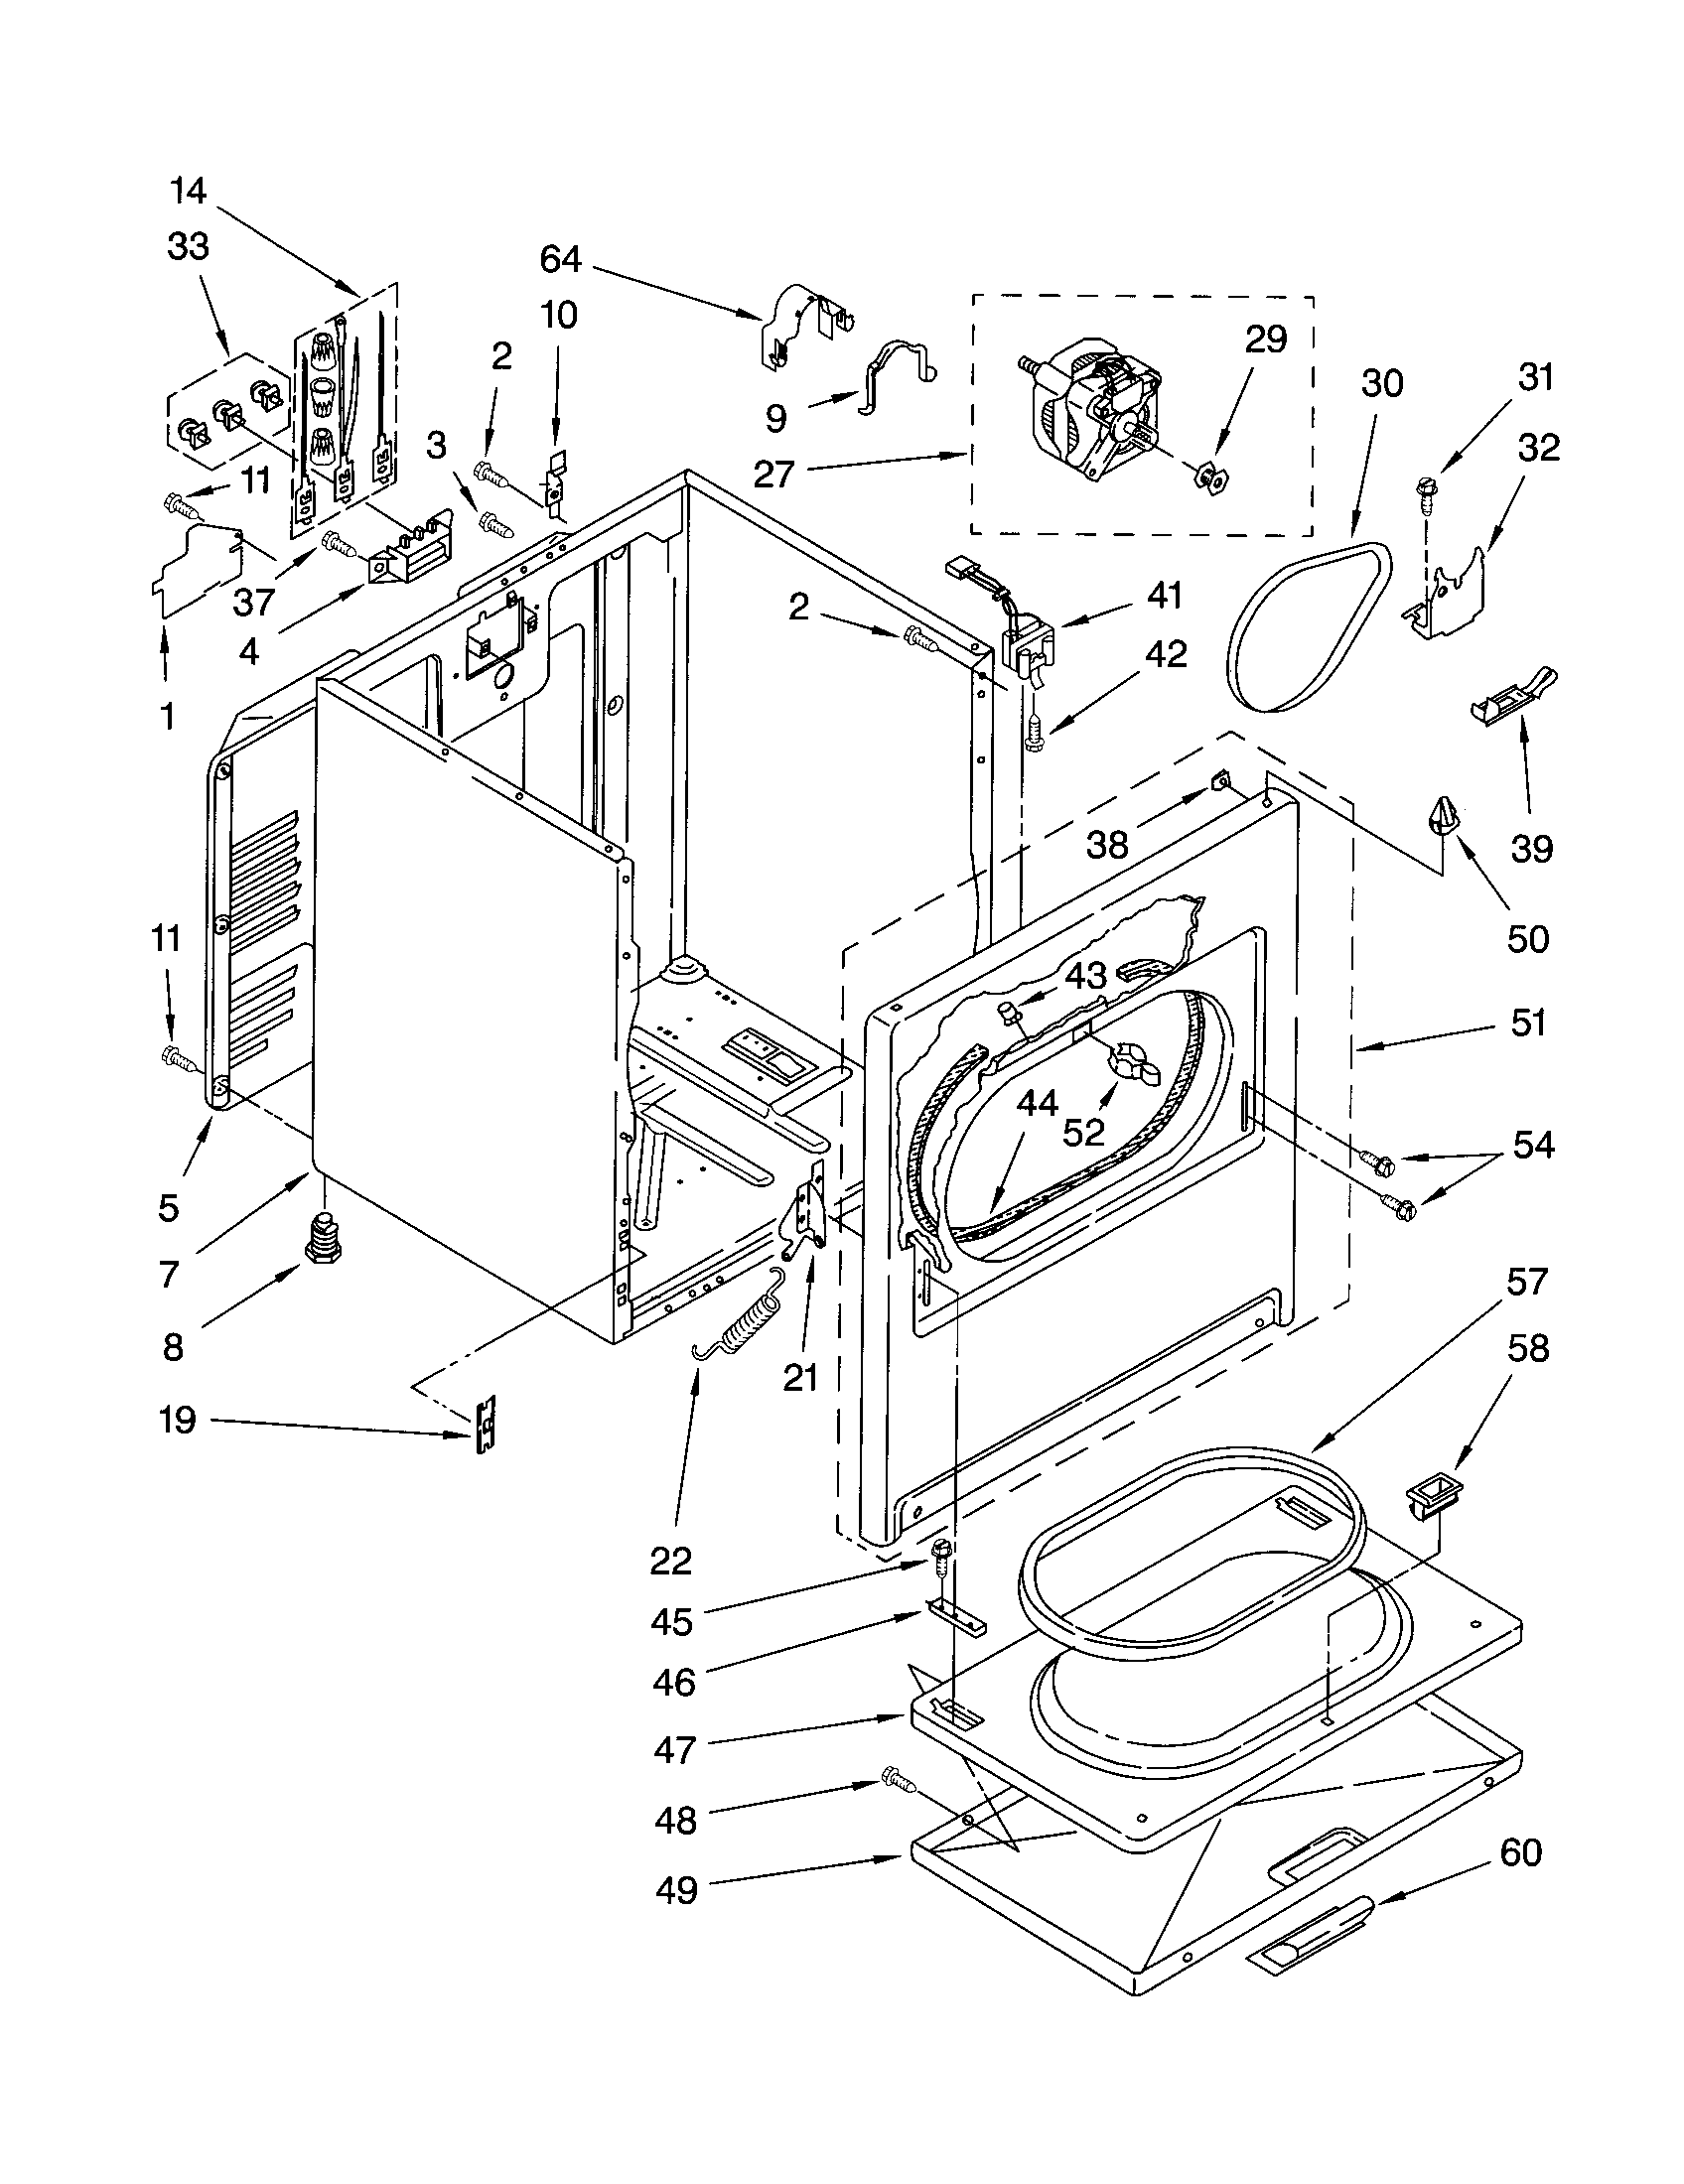 CABINET Diagram & Parts List for Model 11062822101 Kenmore